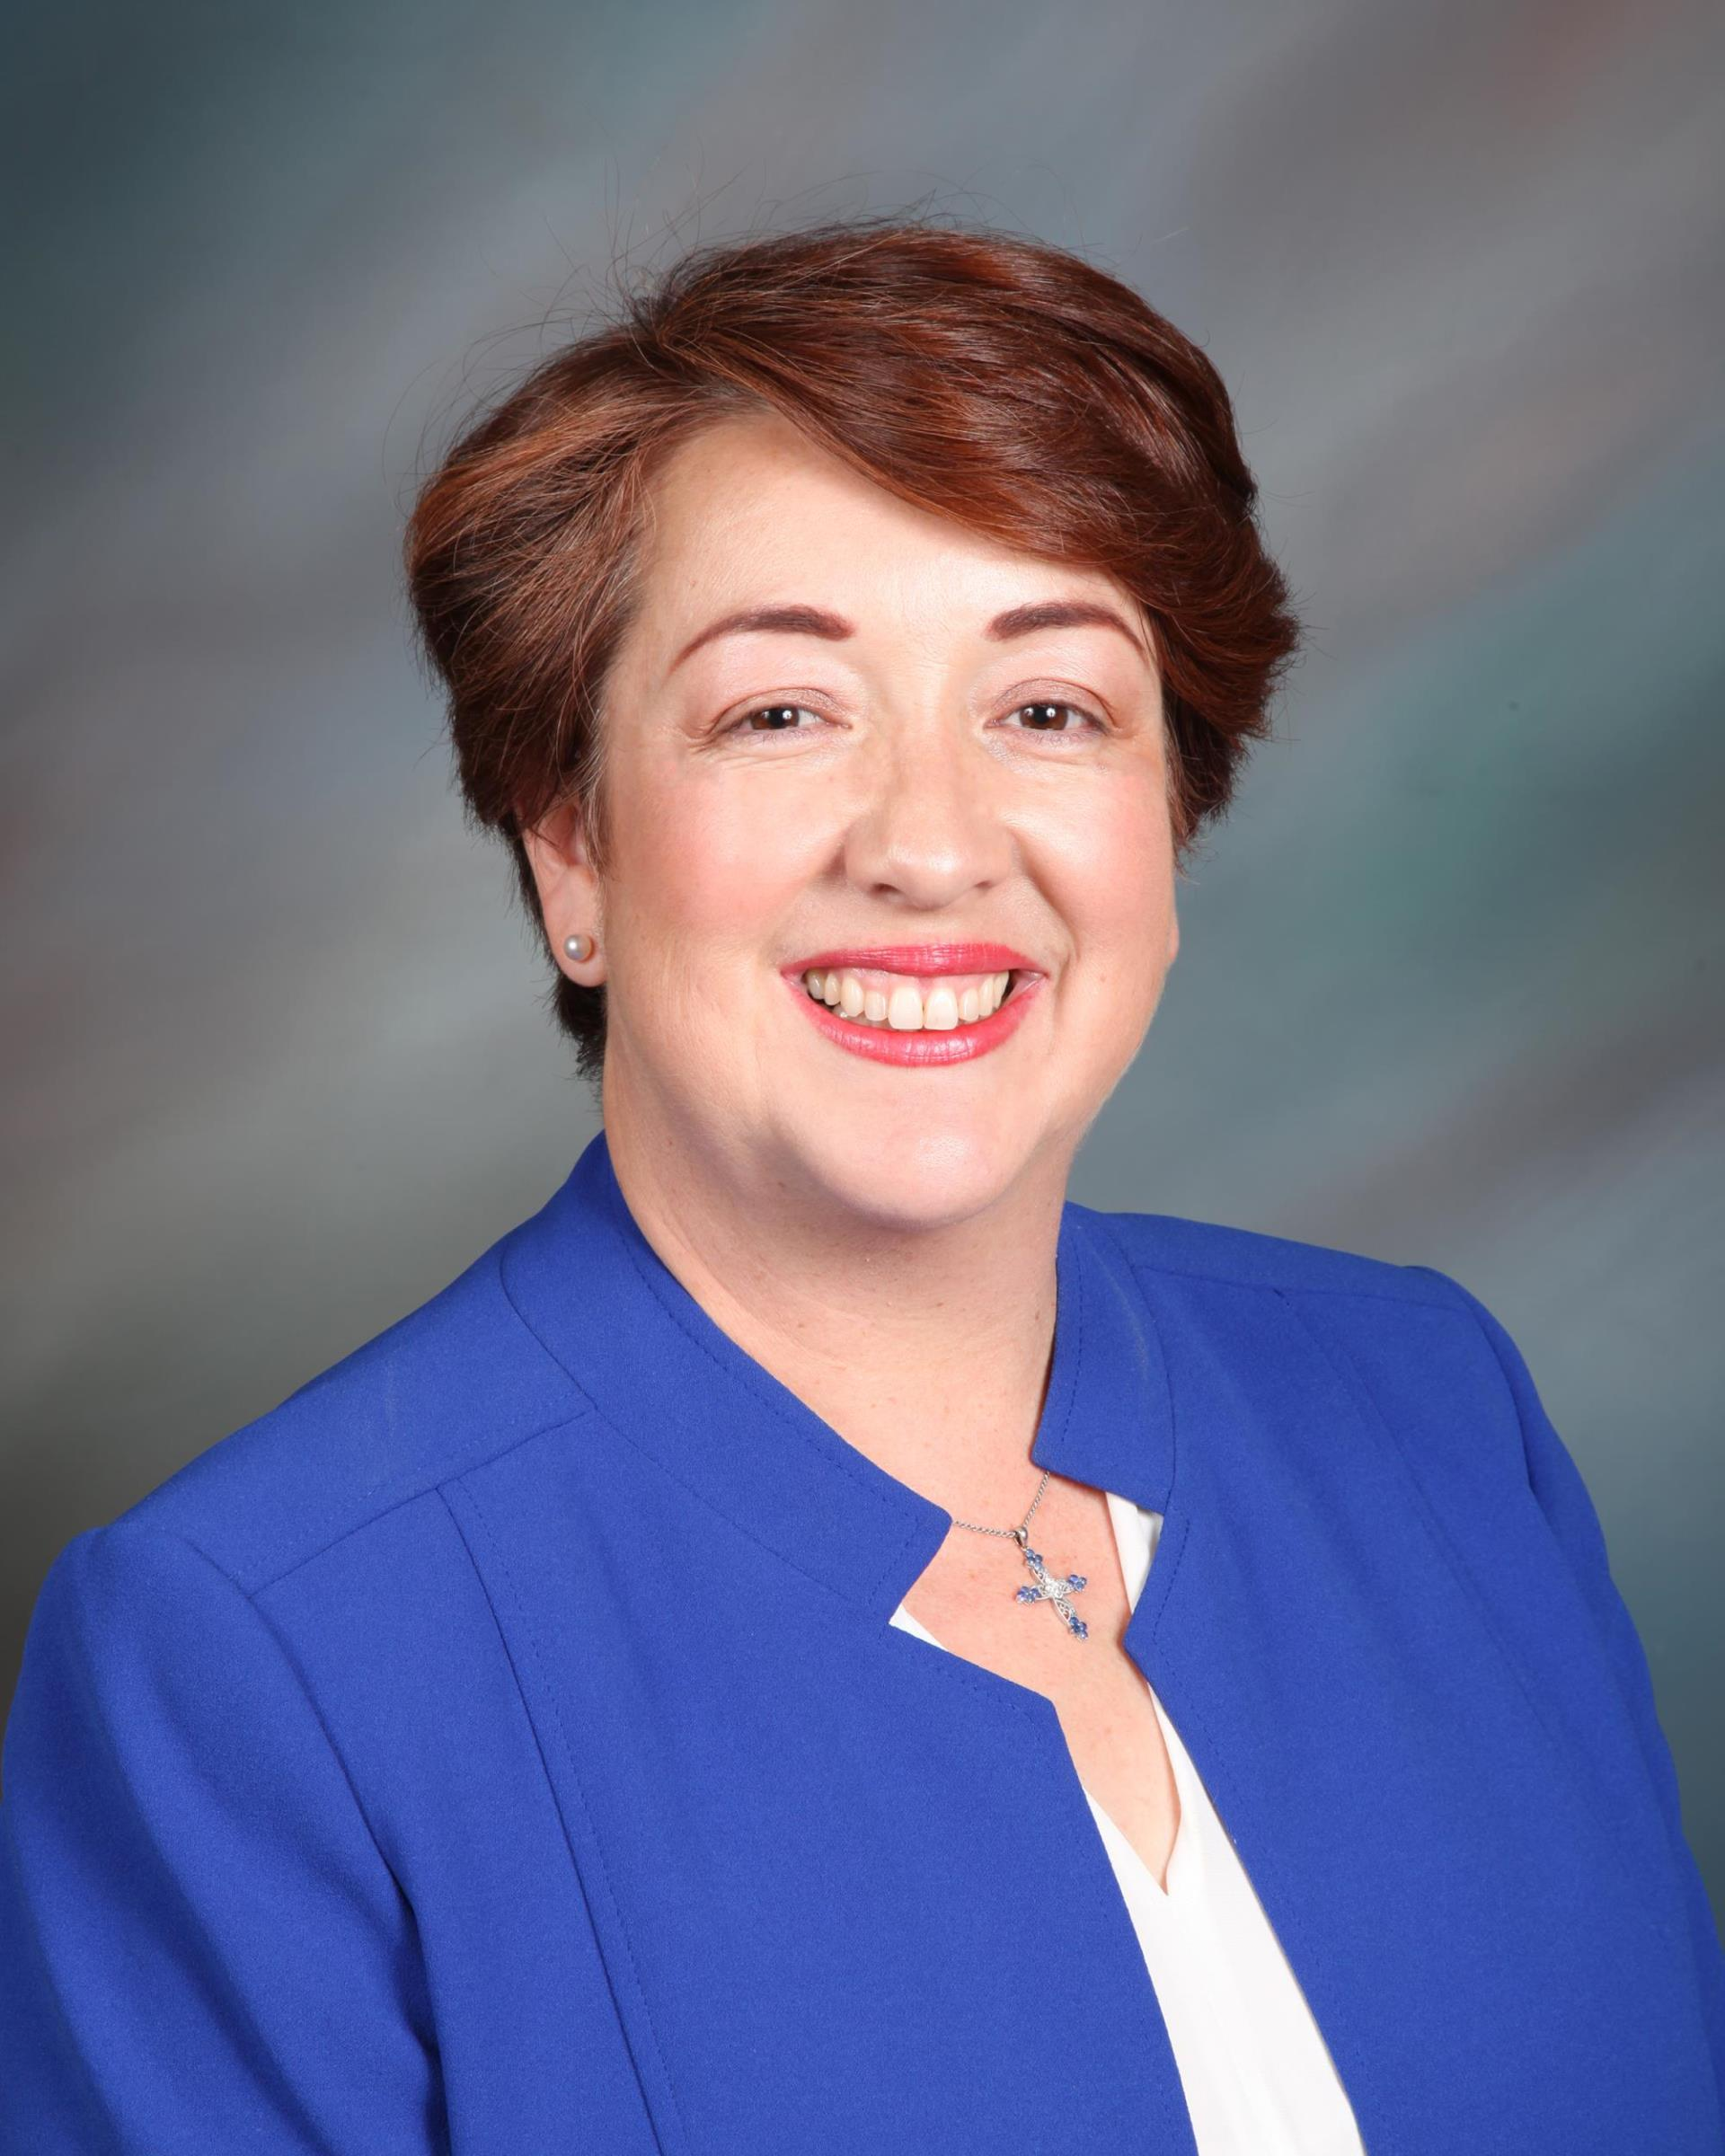 Council Member Ruth Luevanos